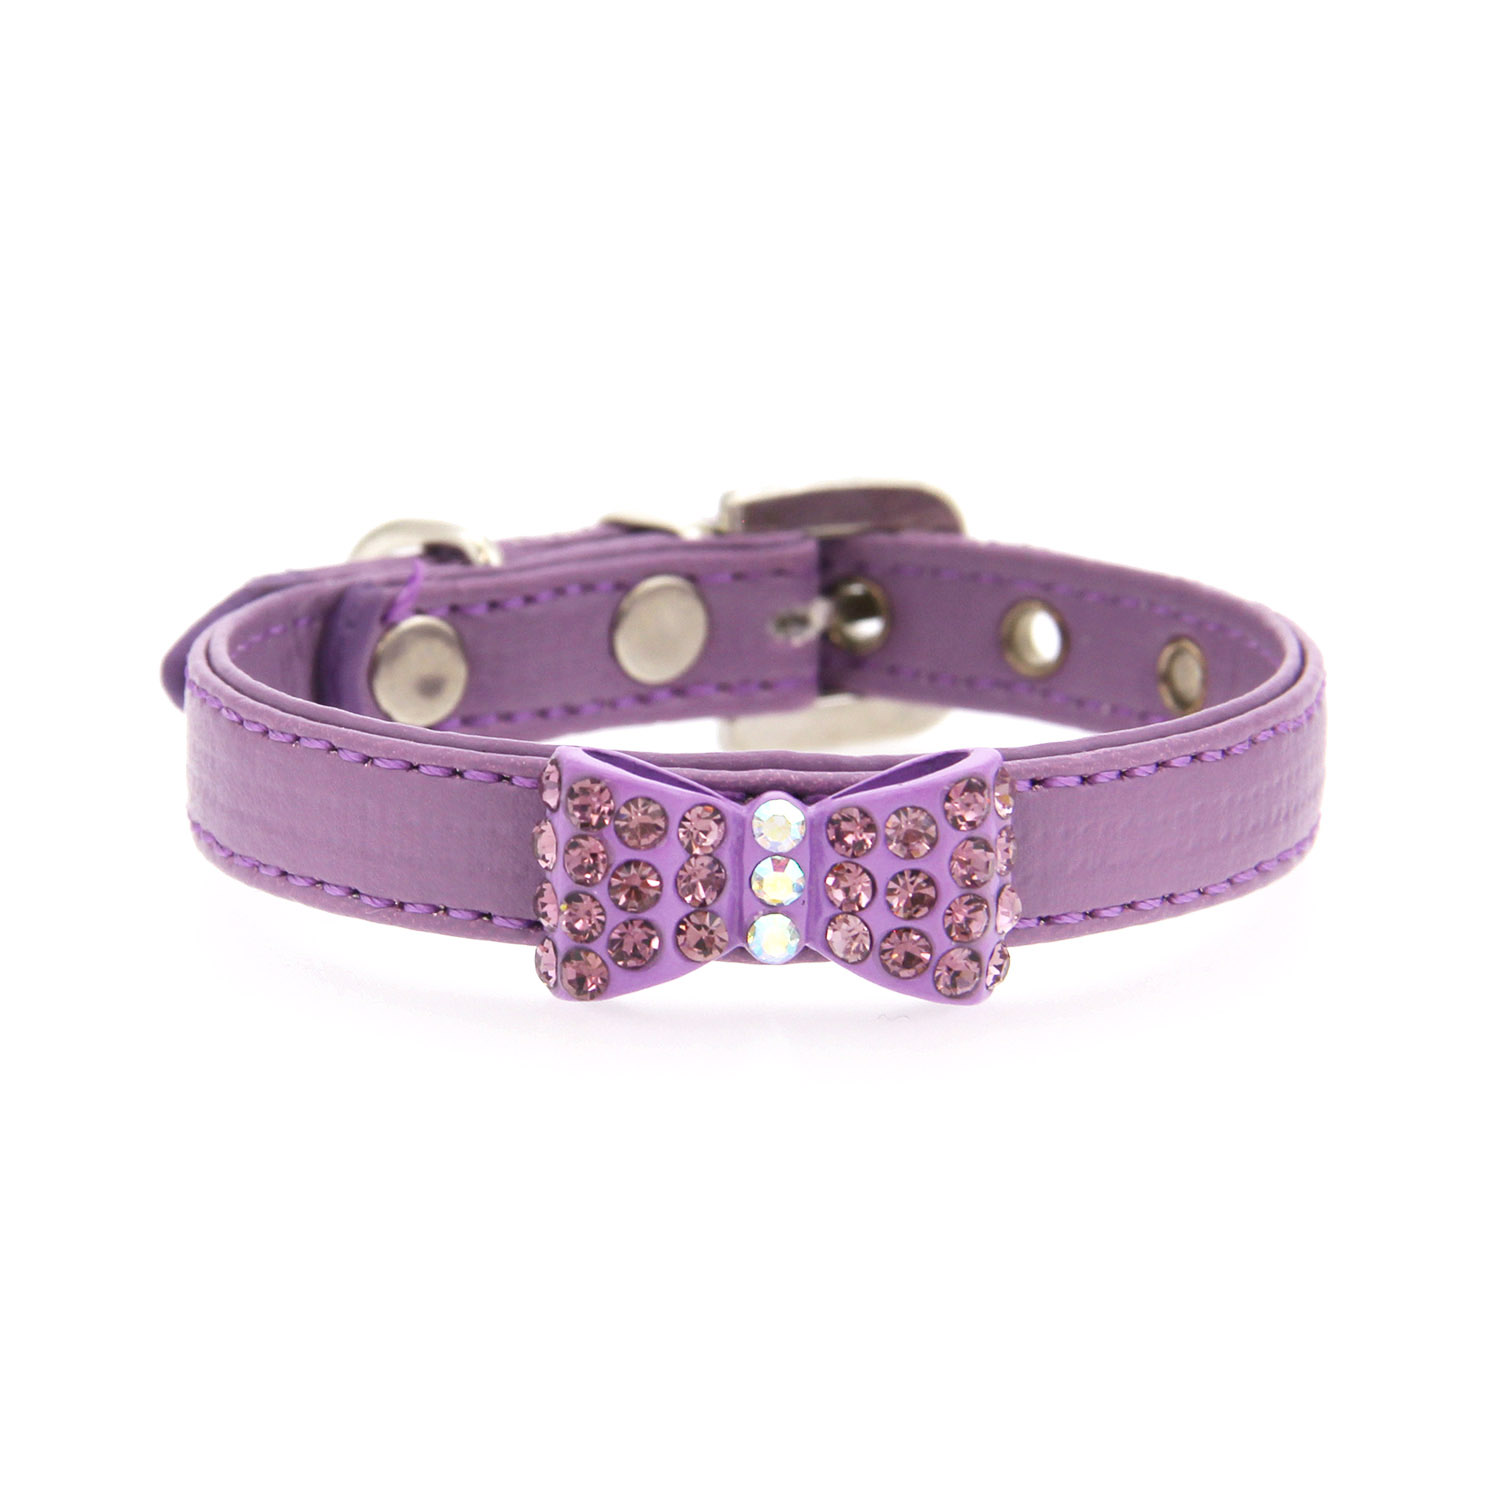 Bow-dacious Crystal Dog Collar - Lavender